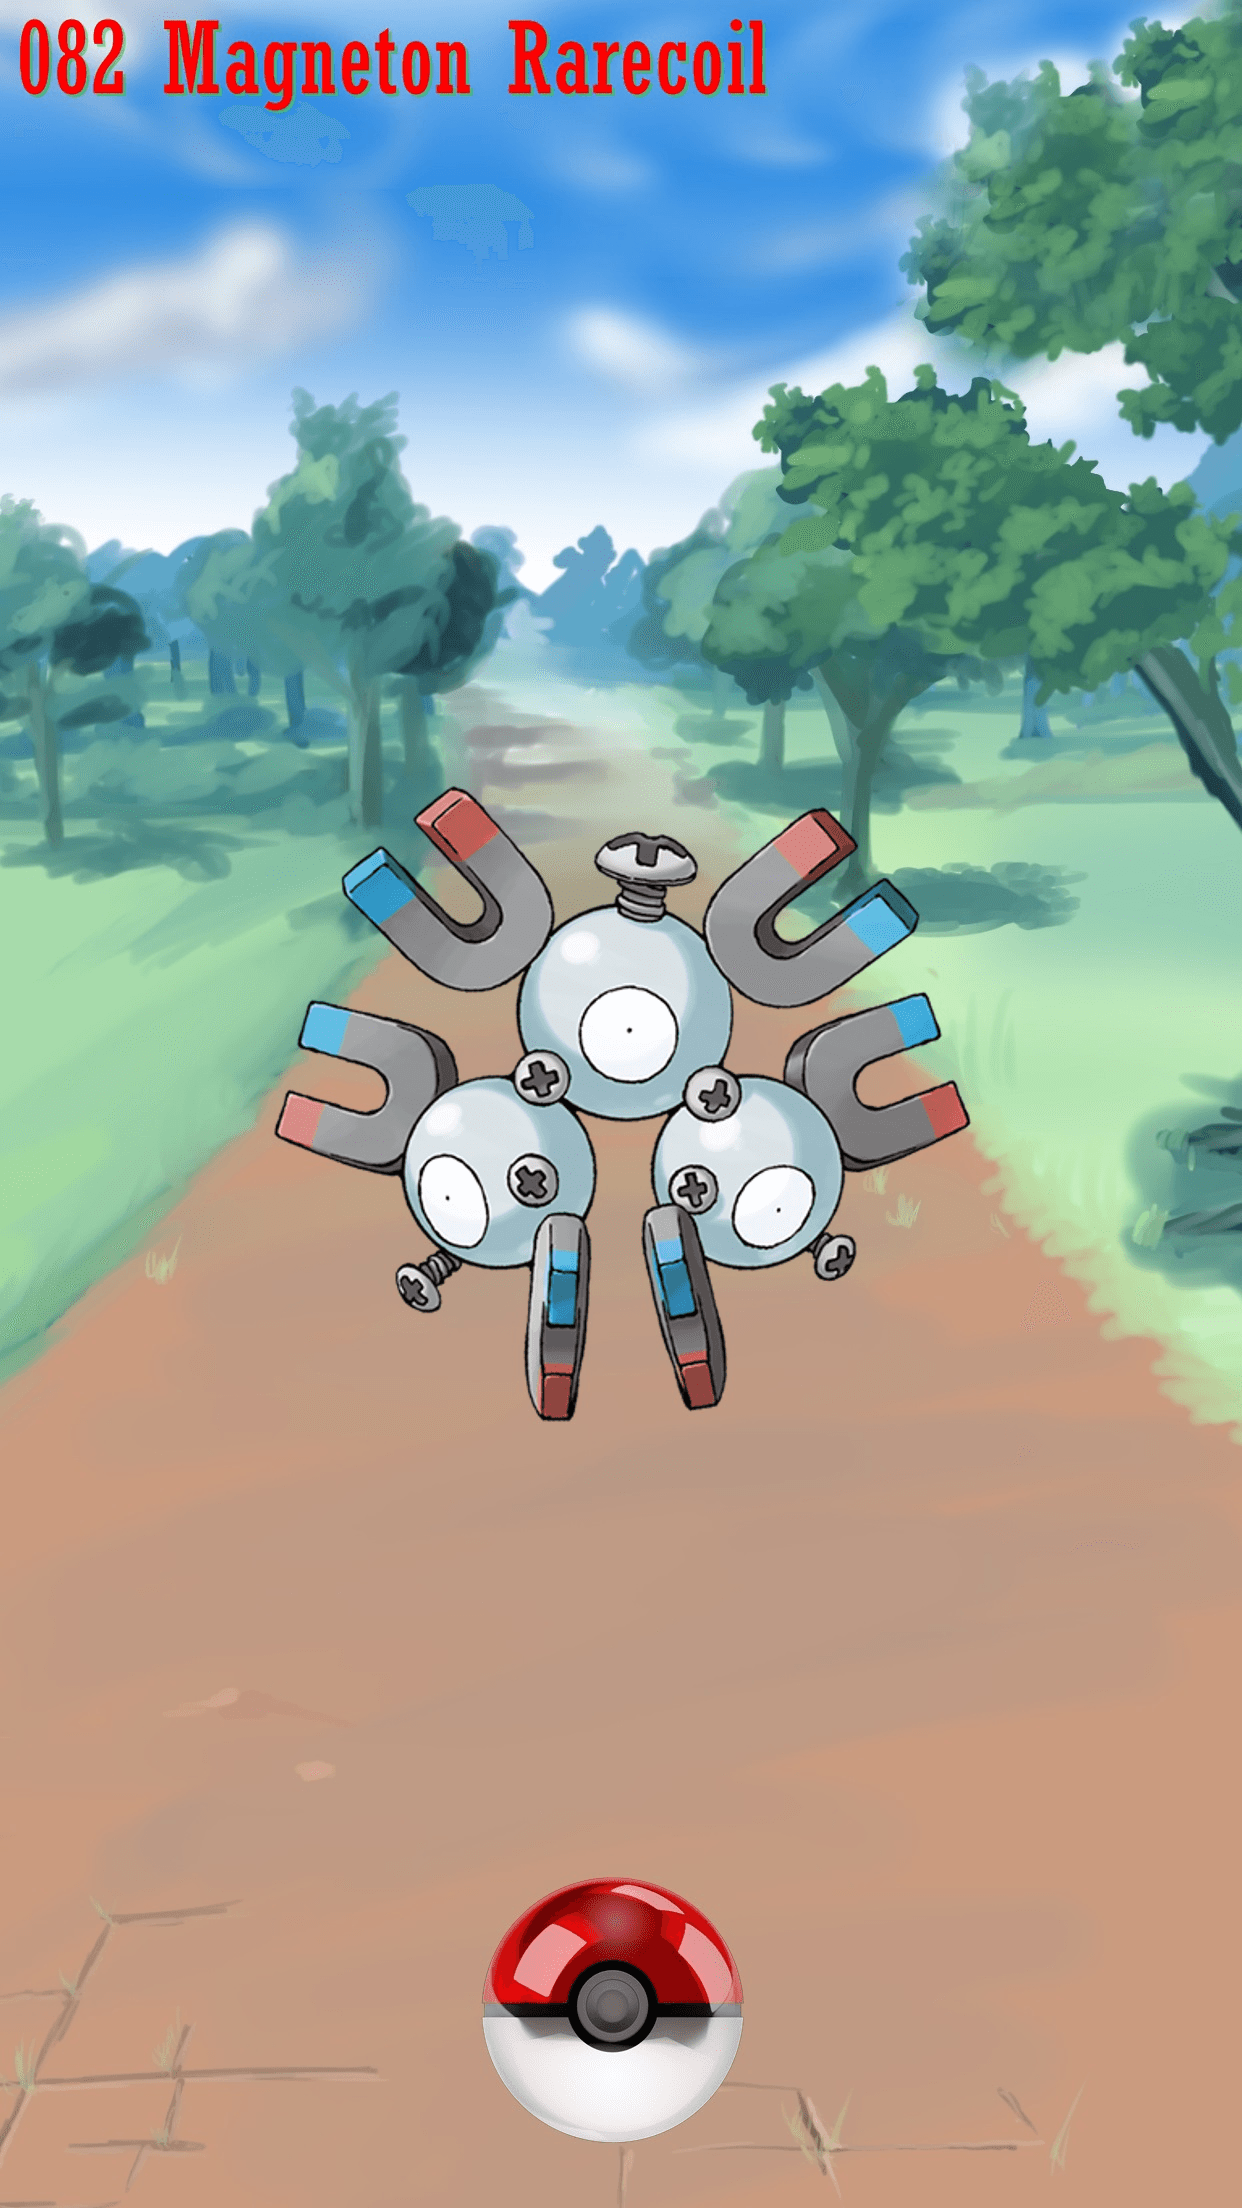 082 Street Pokeball Magneton Rarecoil